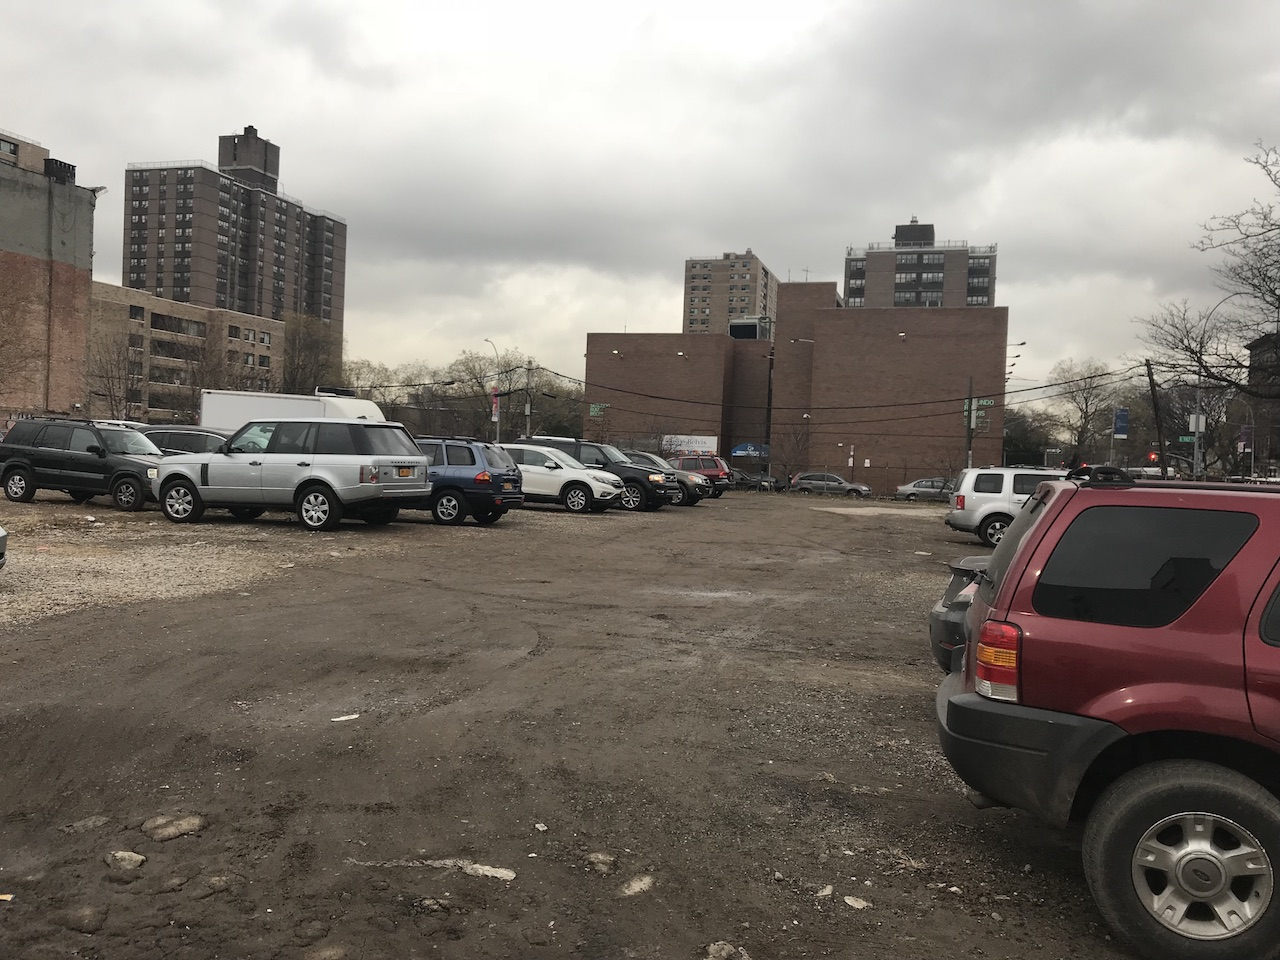 Pastor, city square off over church parking lot